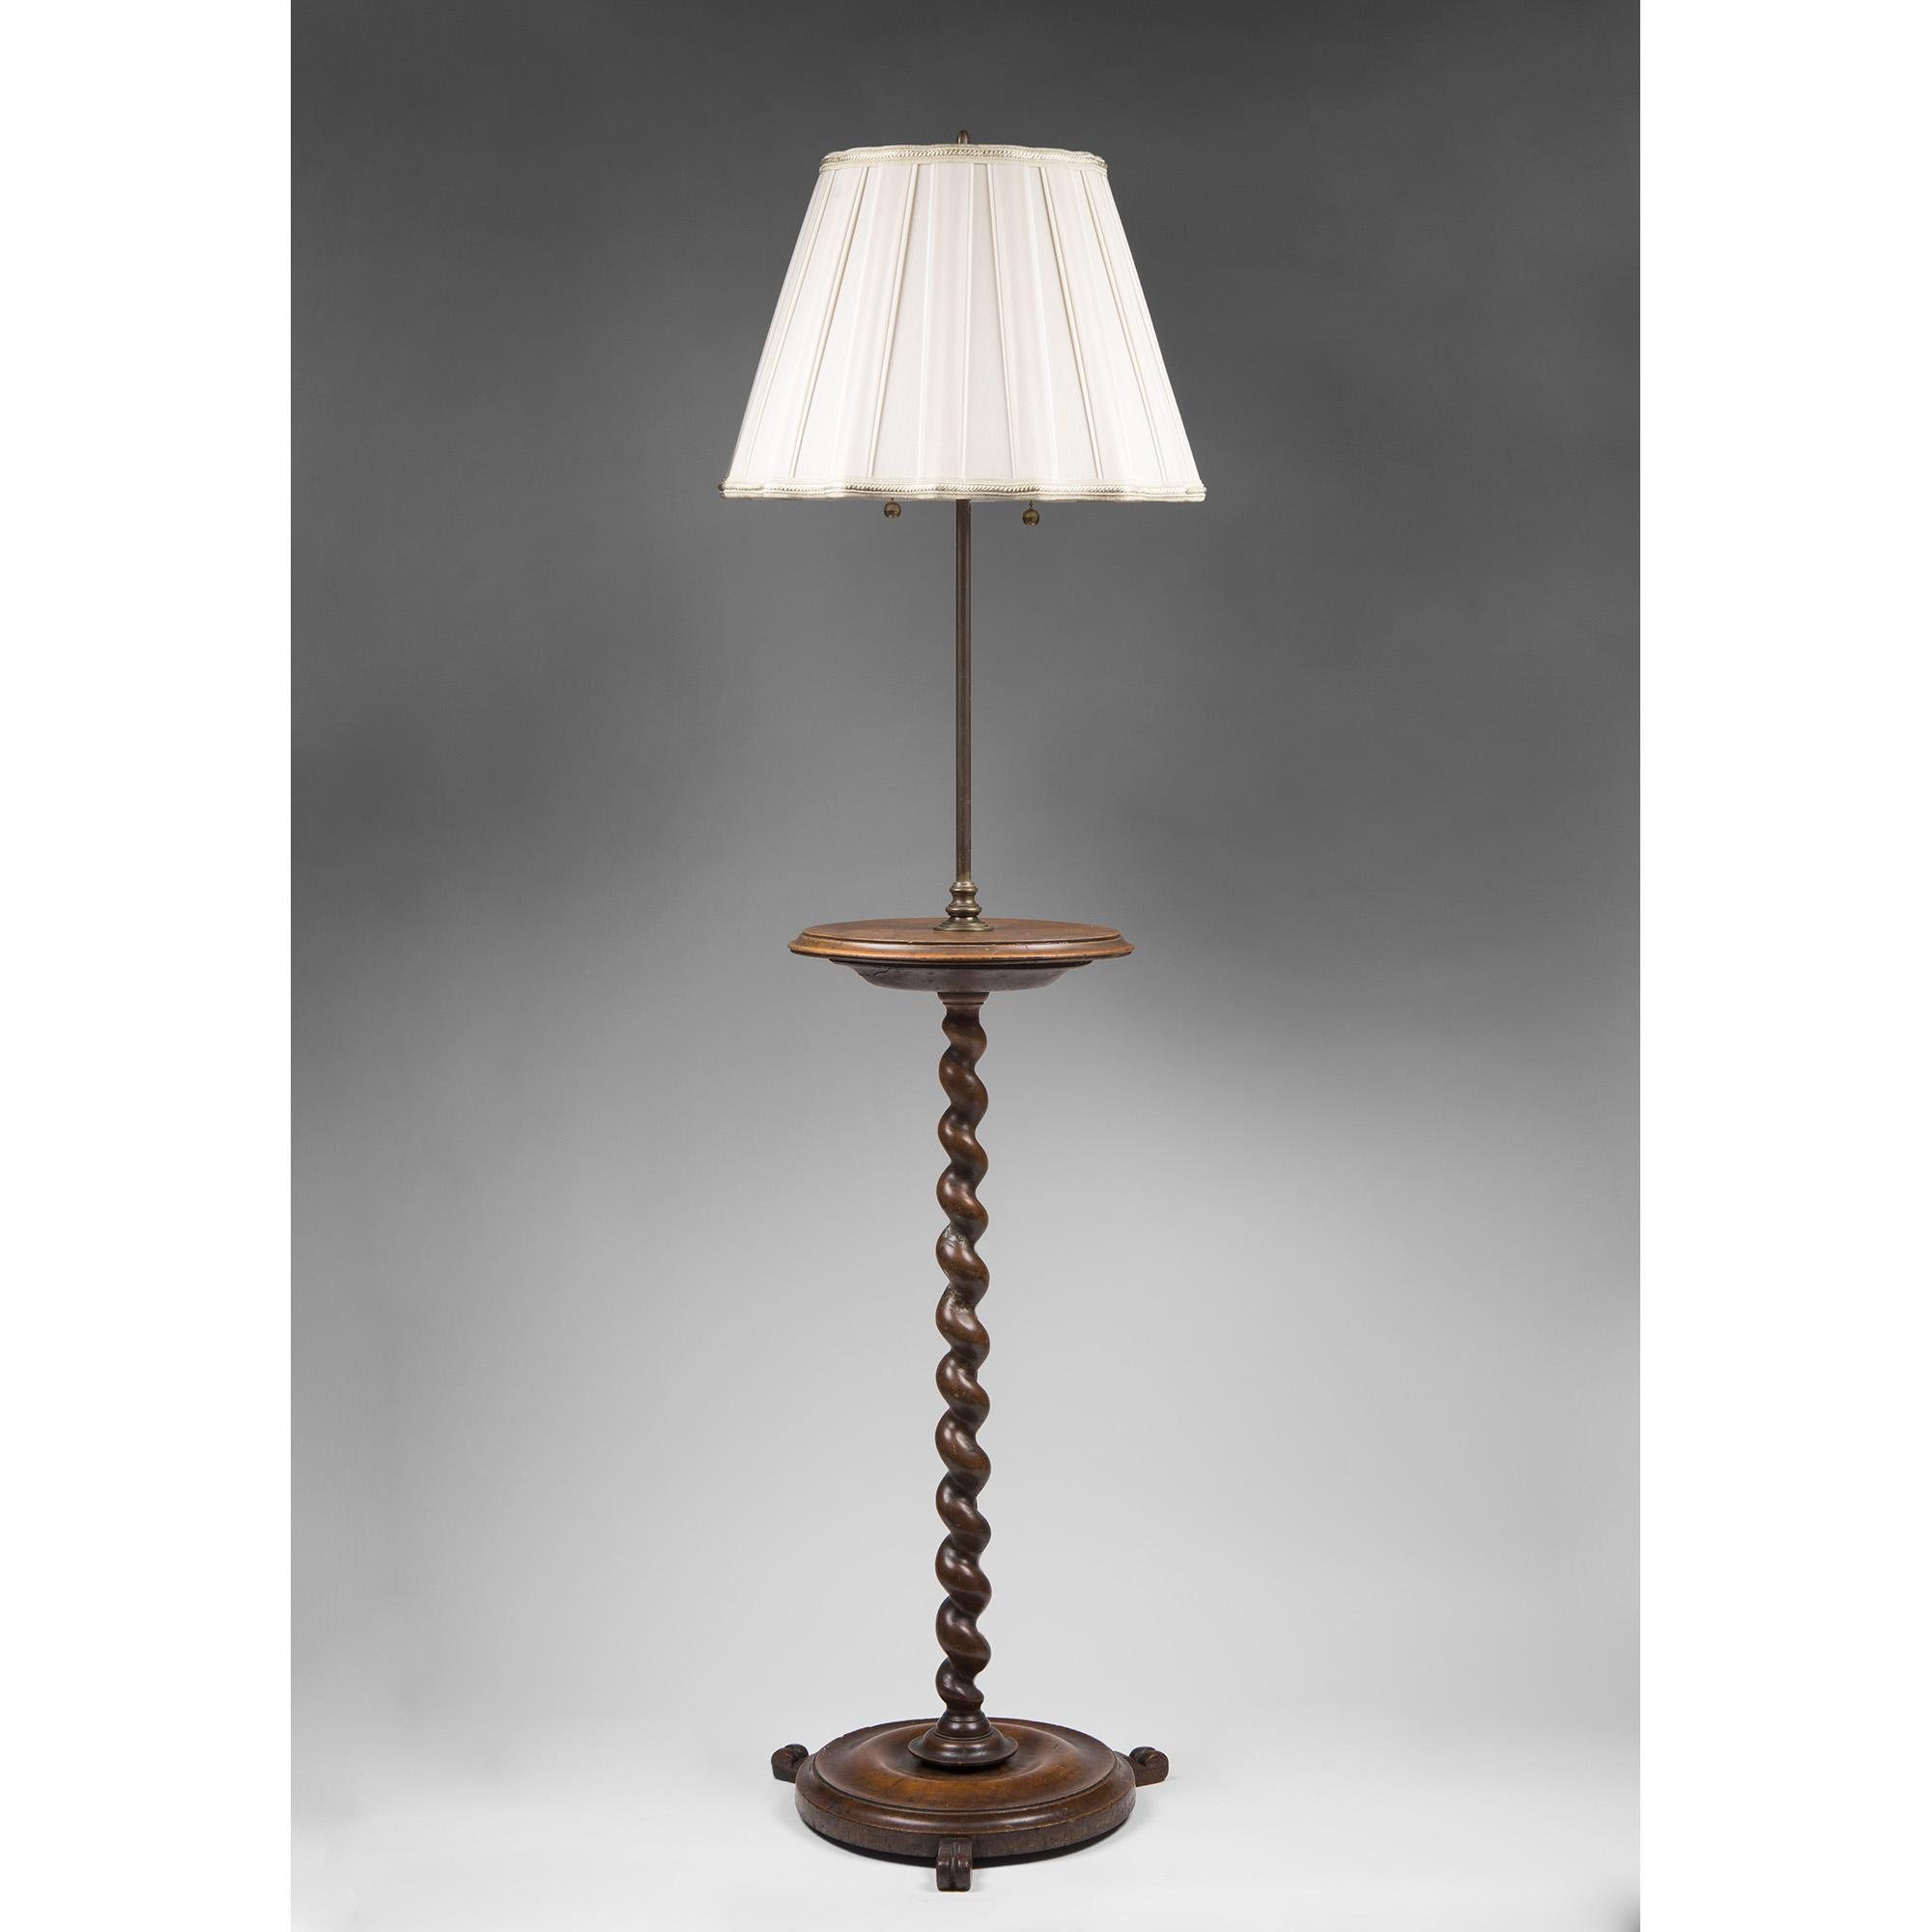 19th C. English Carved Barley Twist Walnut Candle Stand Fitted As Lamp